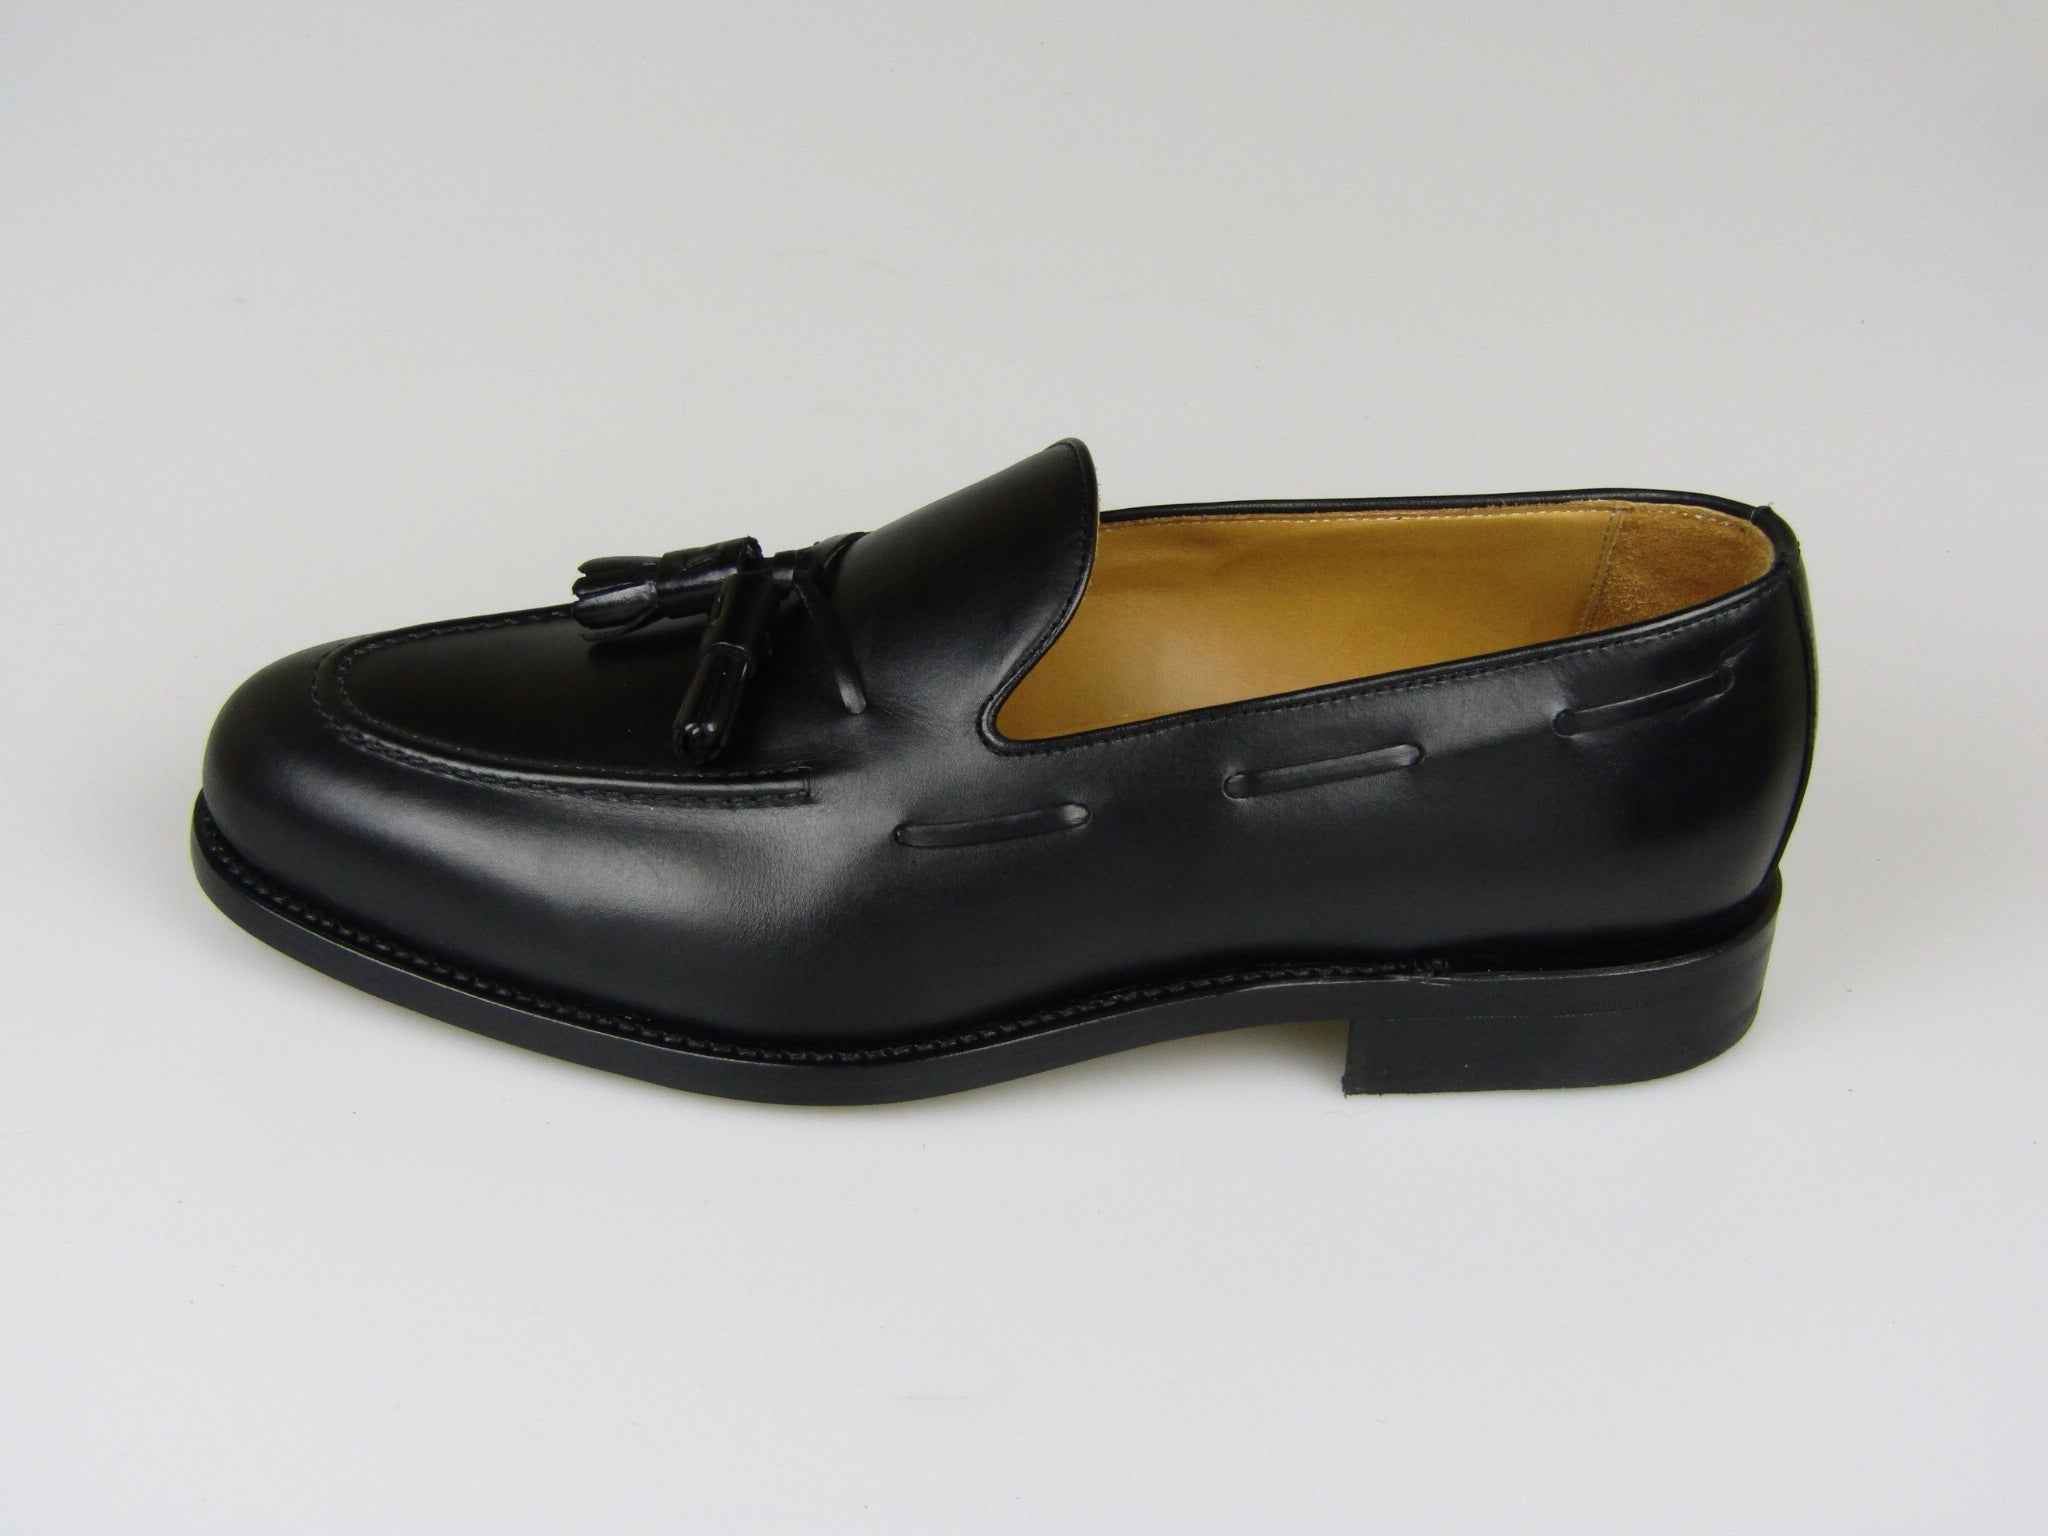 Berwick 8491 Black Calf Leather